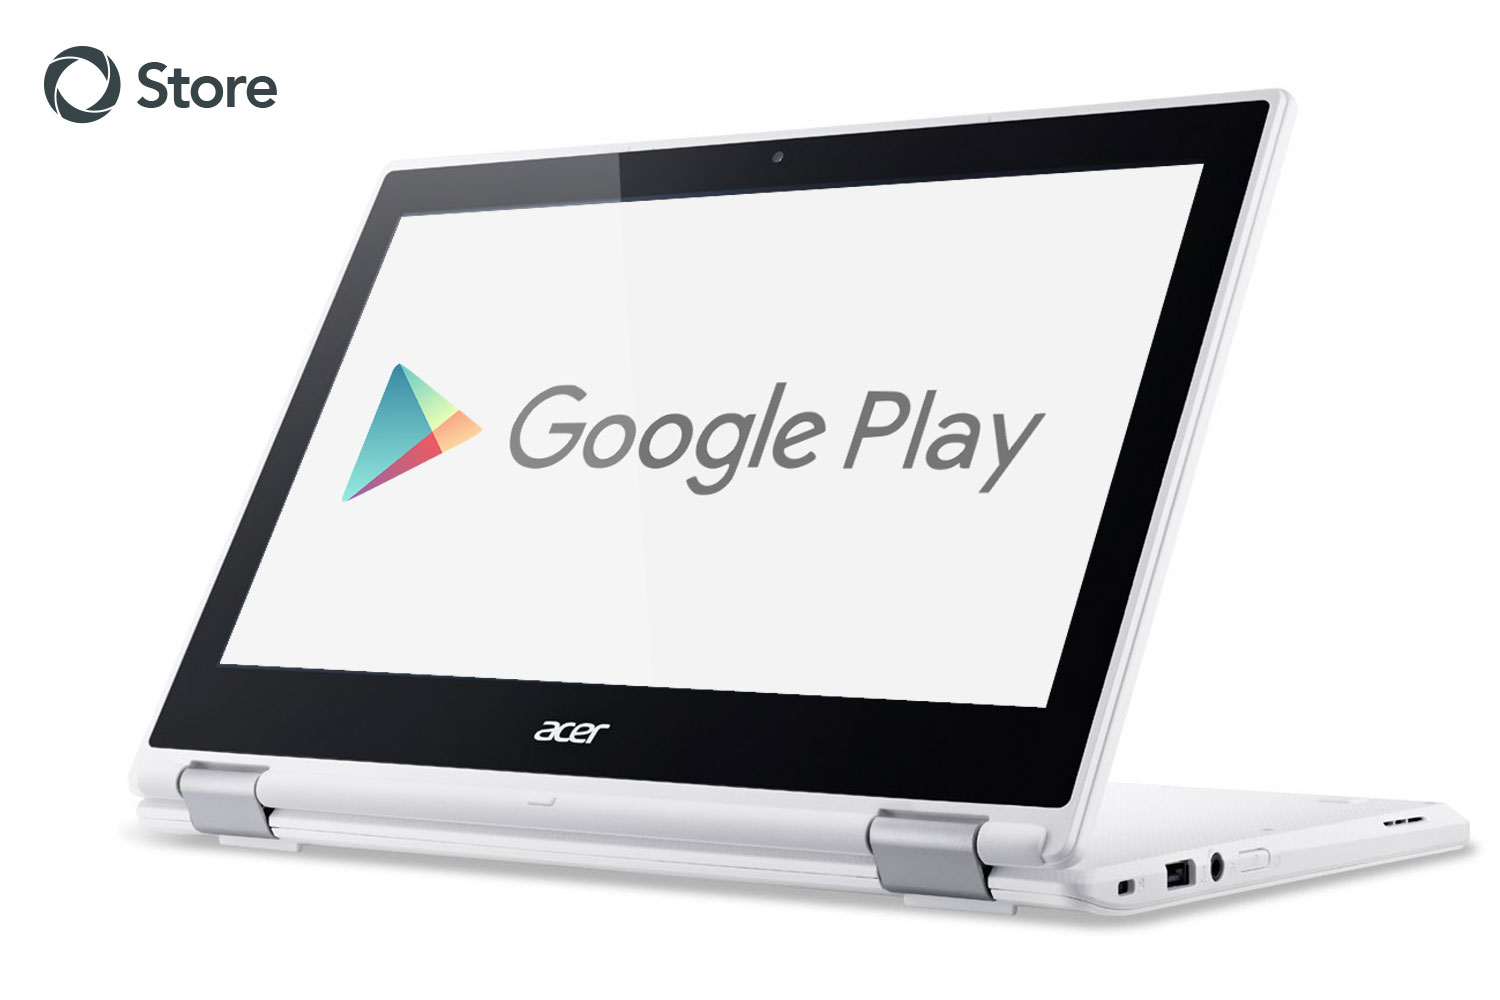 The Google Play Store is Now Available for Chromebooks - OETC